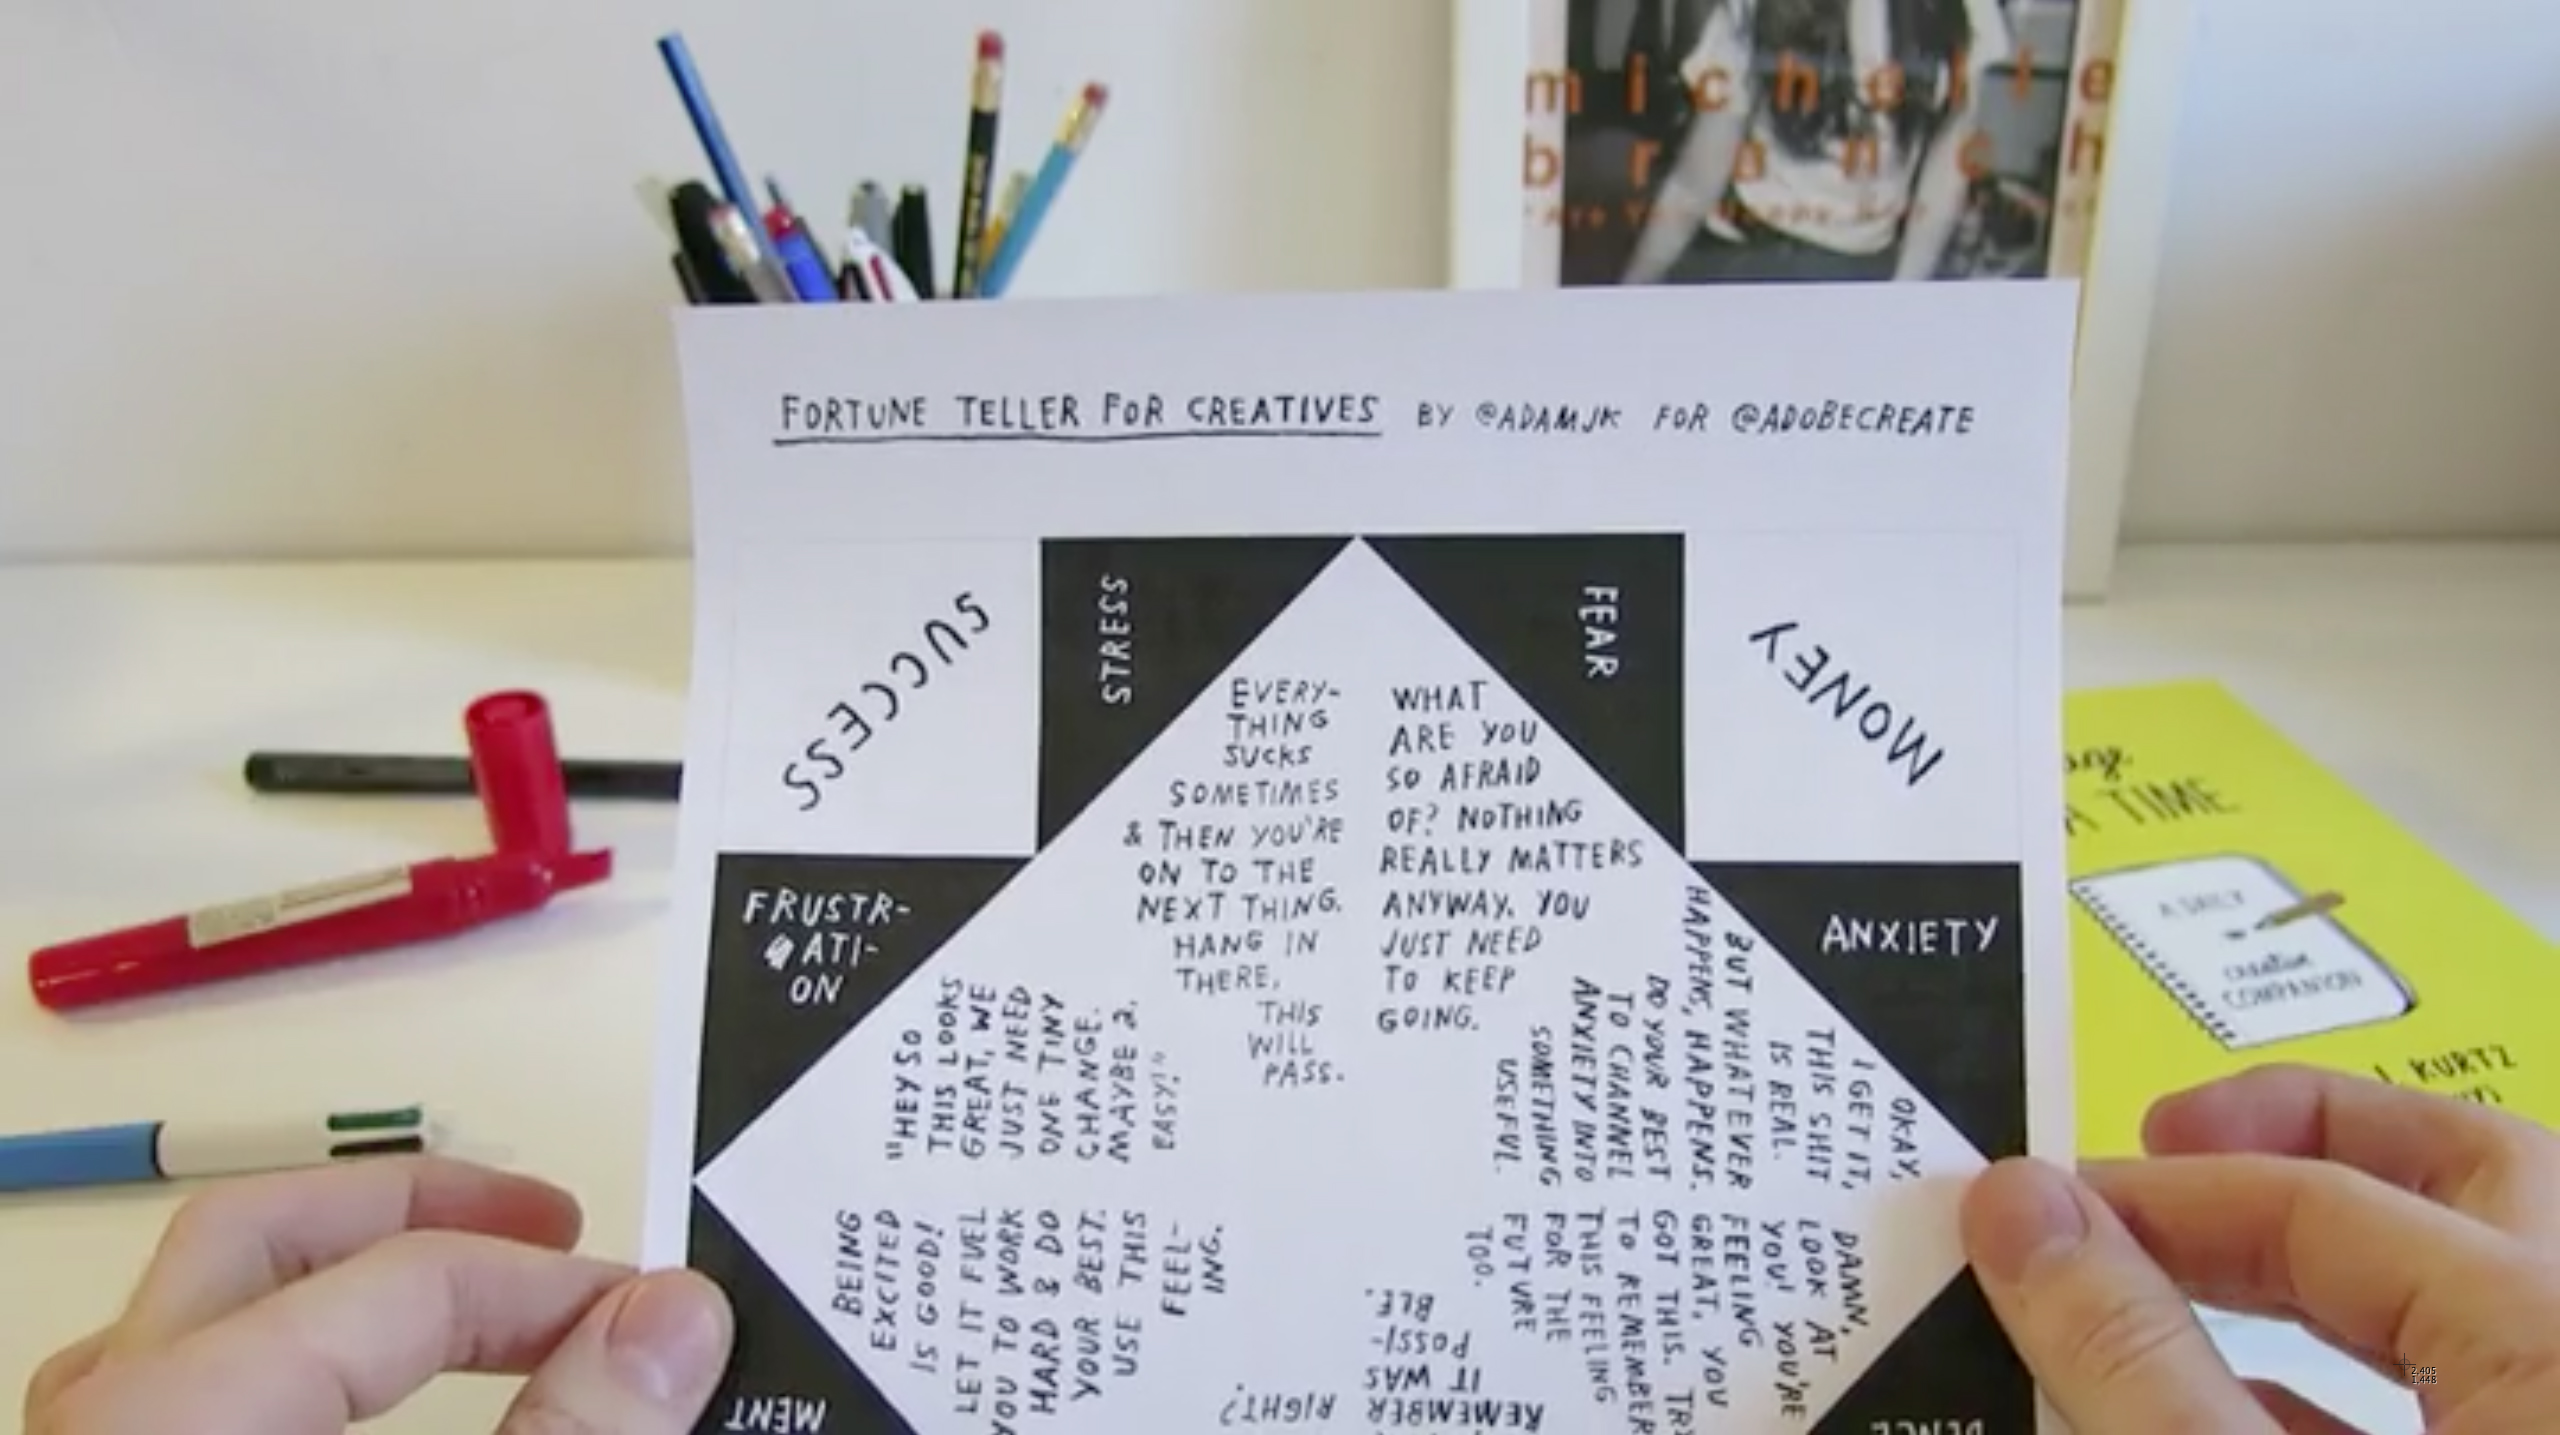 In this video, ADAMJK explains how to fold the paper and use the fortune teller.